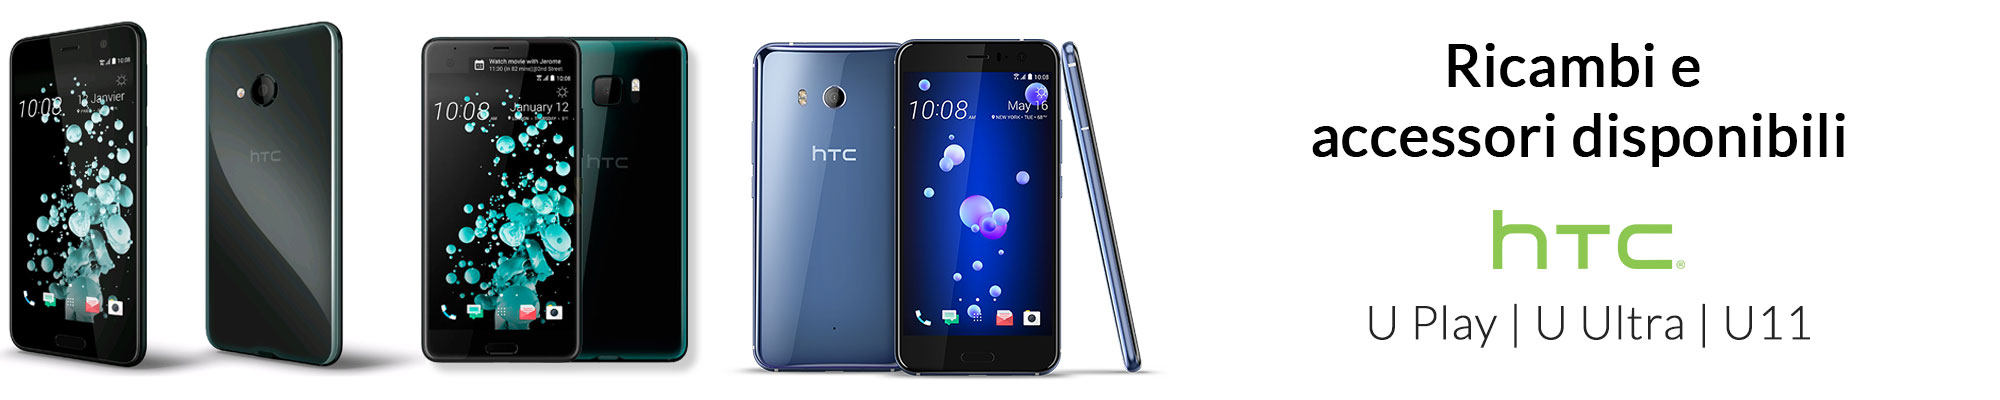 Nuovo Ricambi e accessori per HTC U Play, U Ultra e U11 disponibili